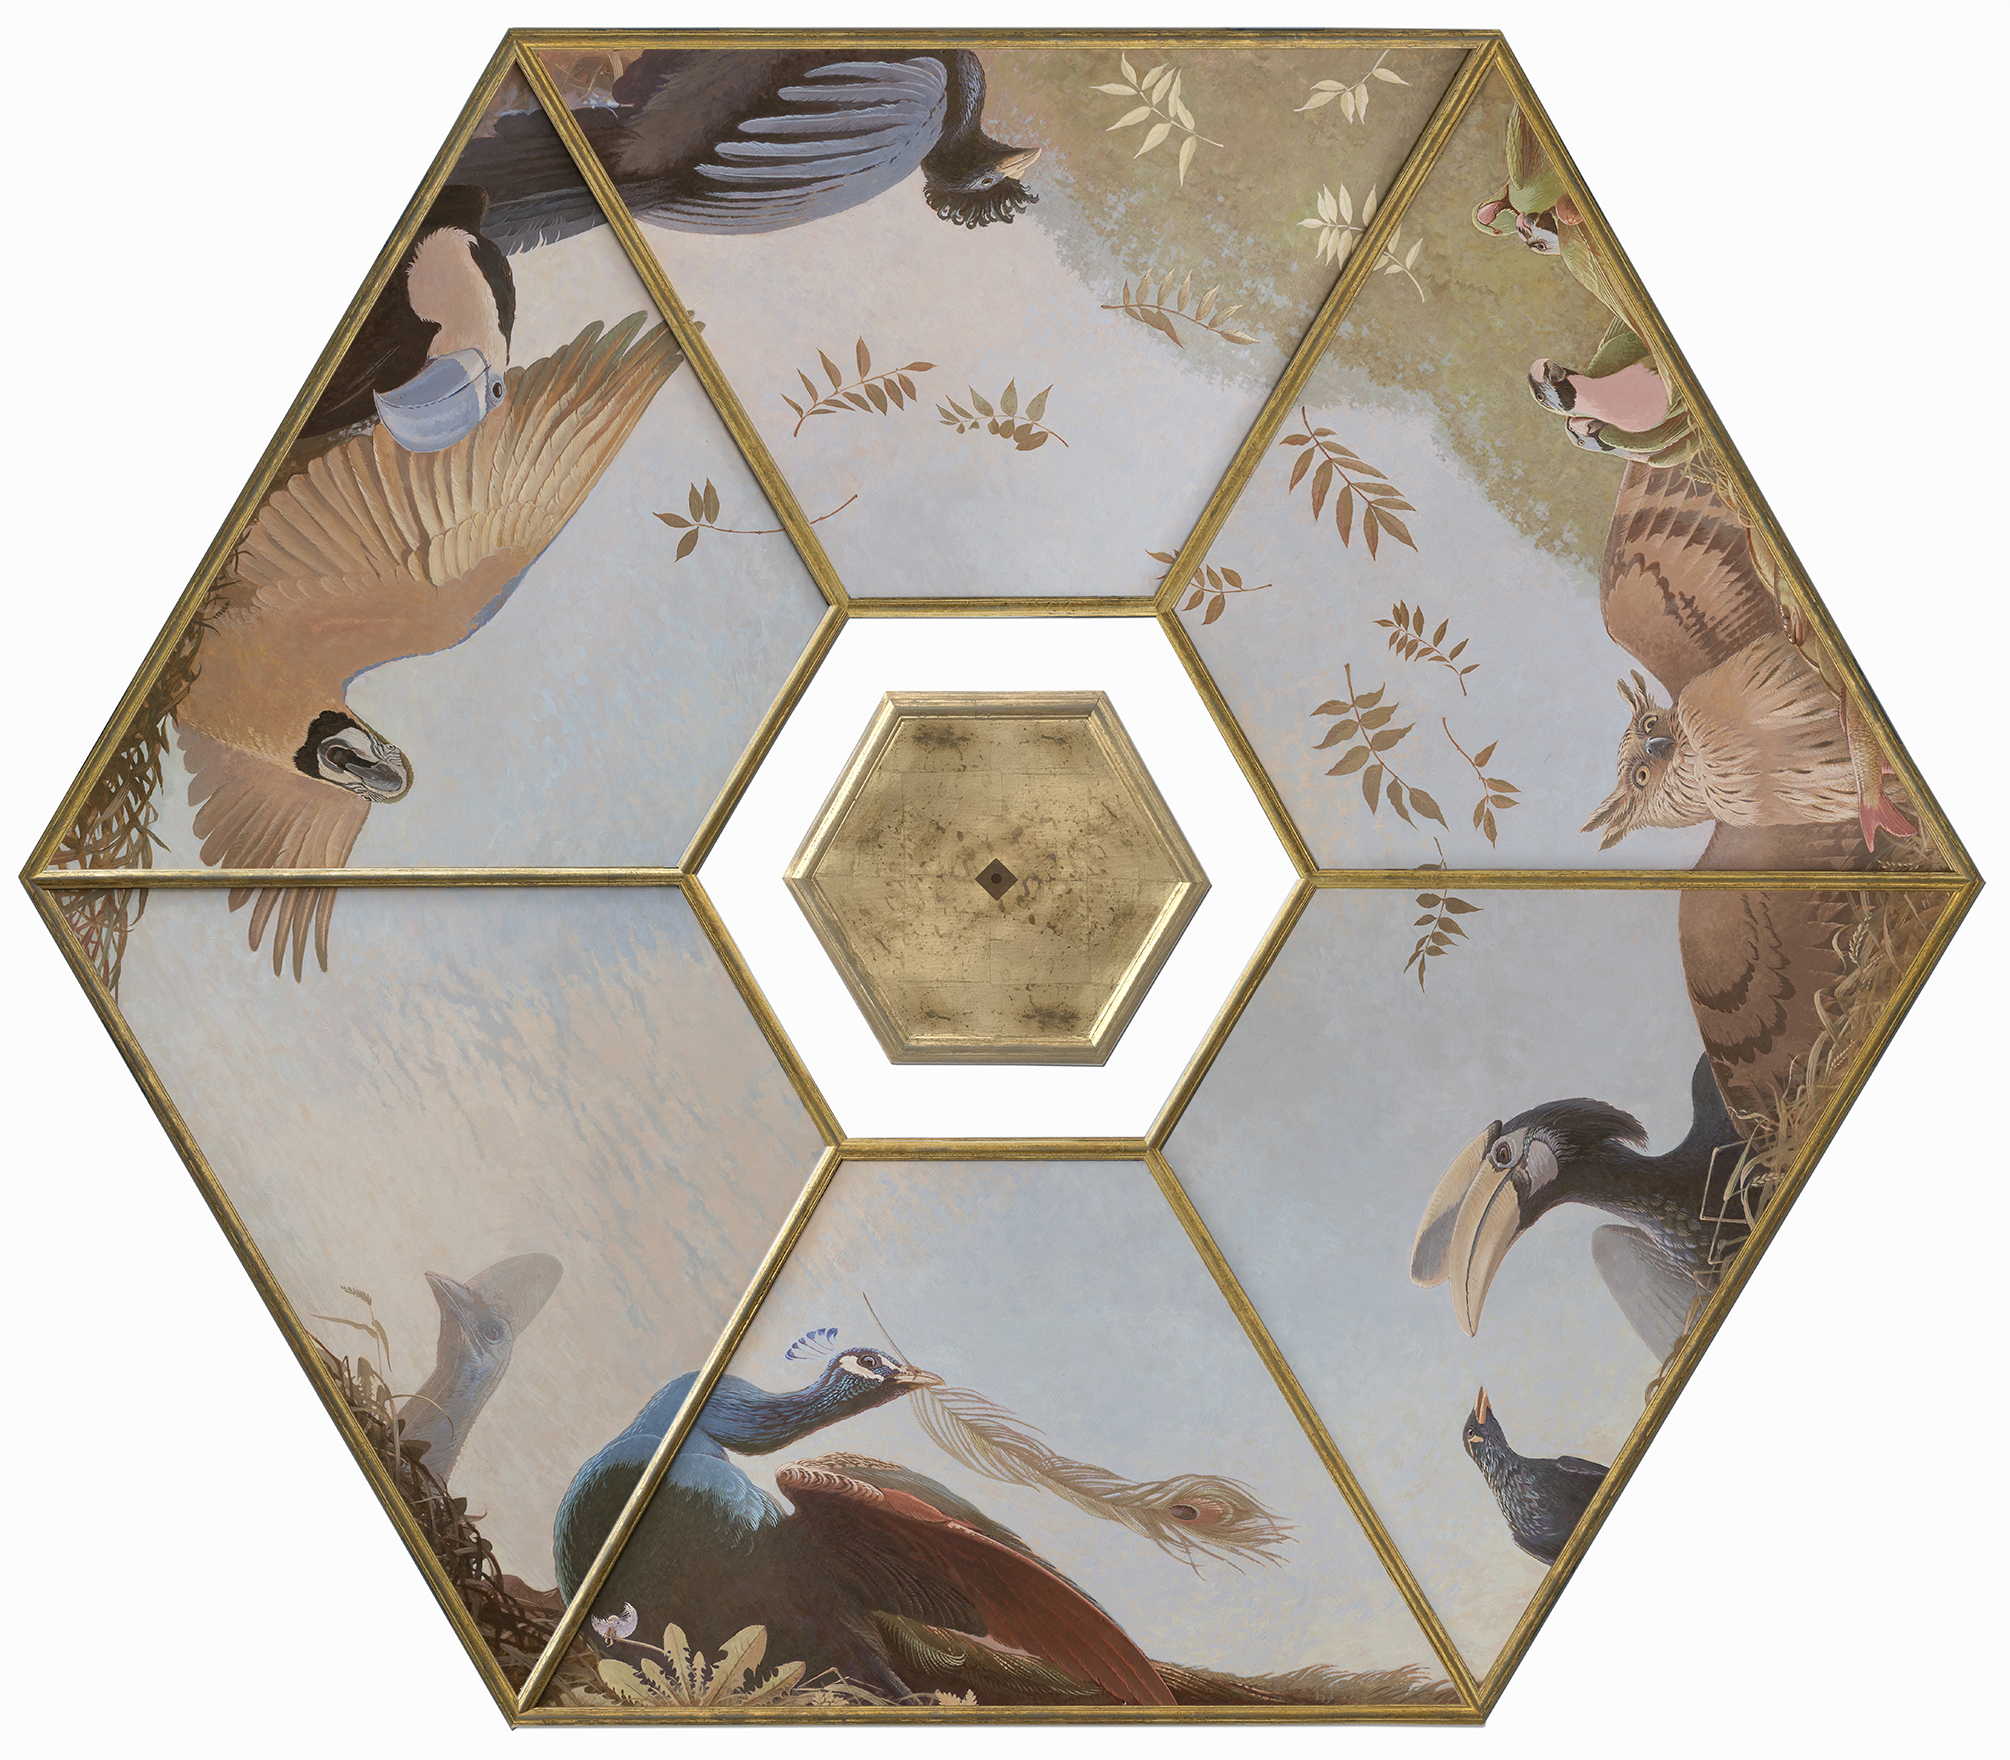 Other One\'s Feathers 2020 - new painted ceiling for the 18th c. Driemond tea pavilion <p> Tempera, Acrylics and goldleaf on wood - diameter 280 cm